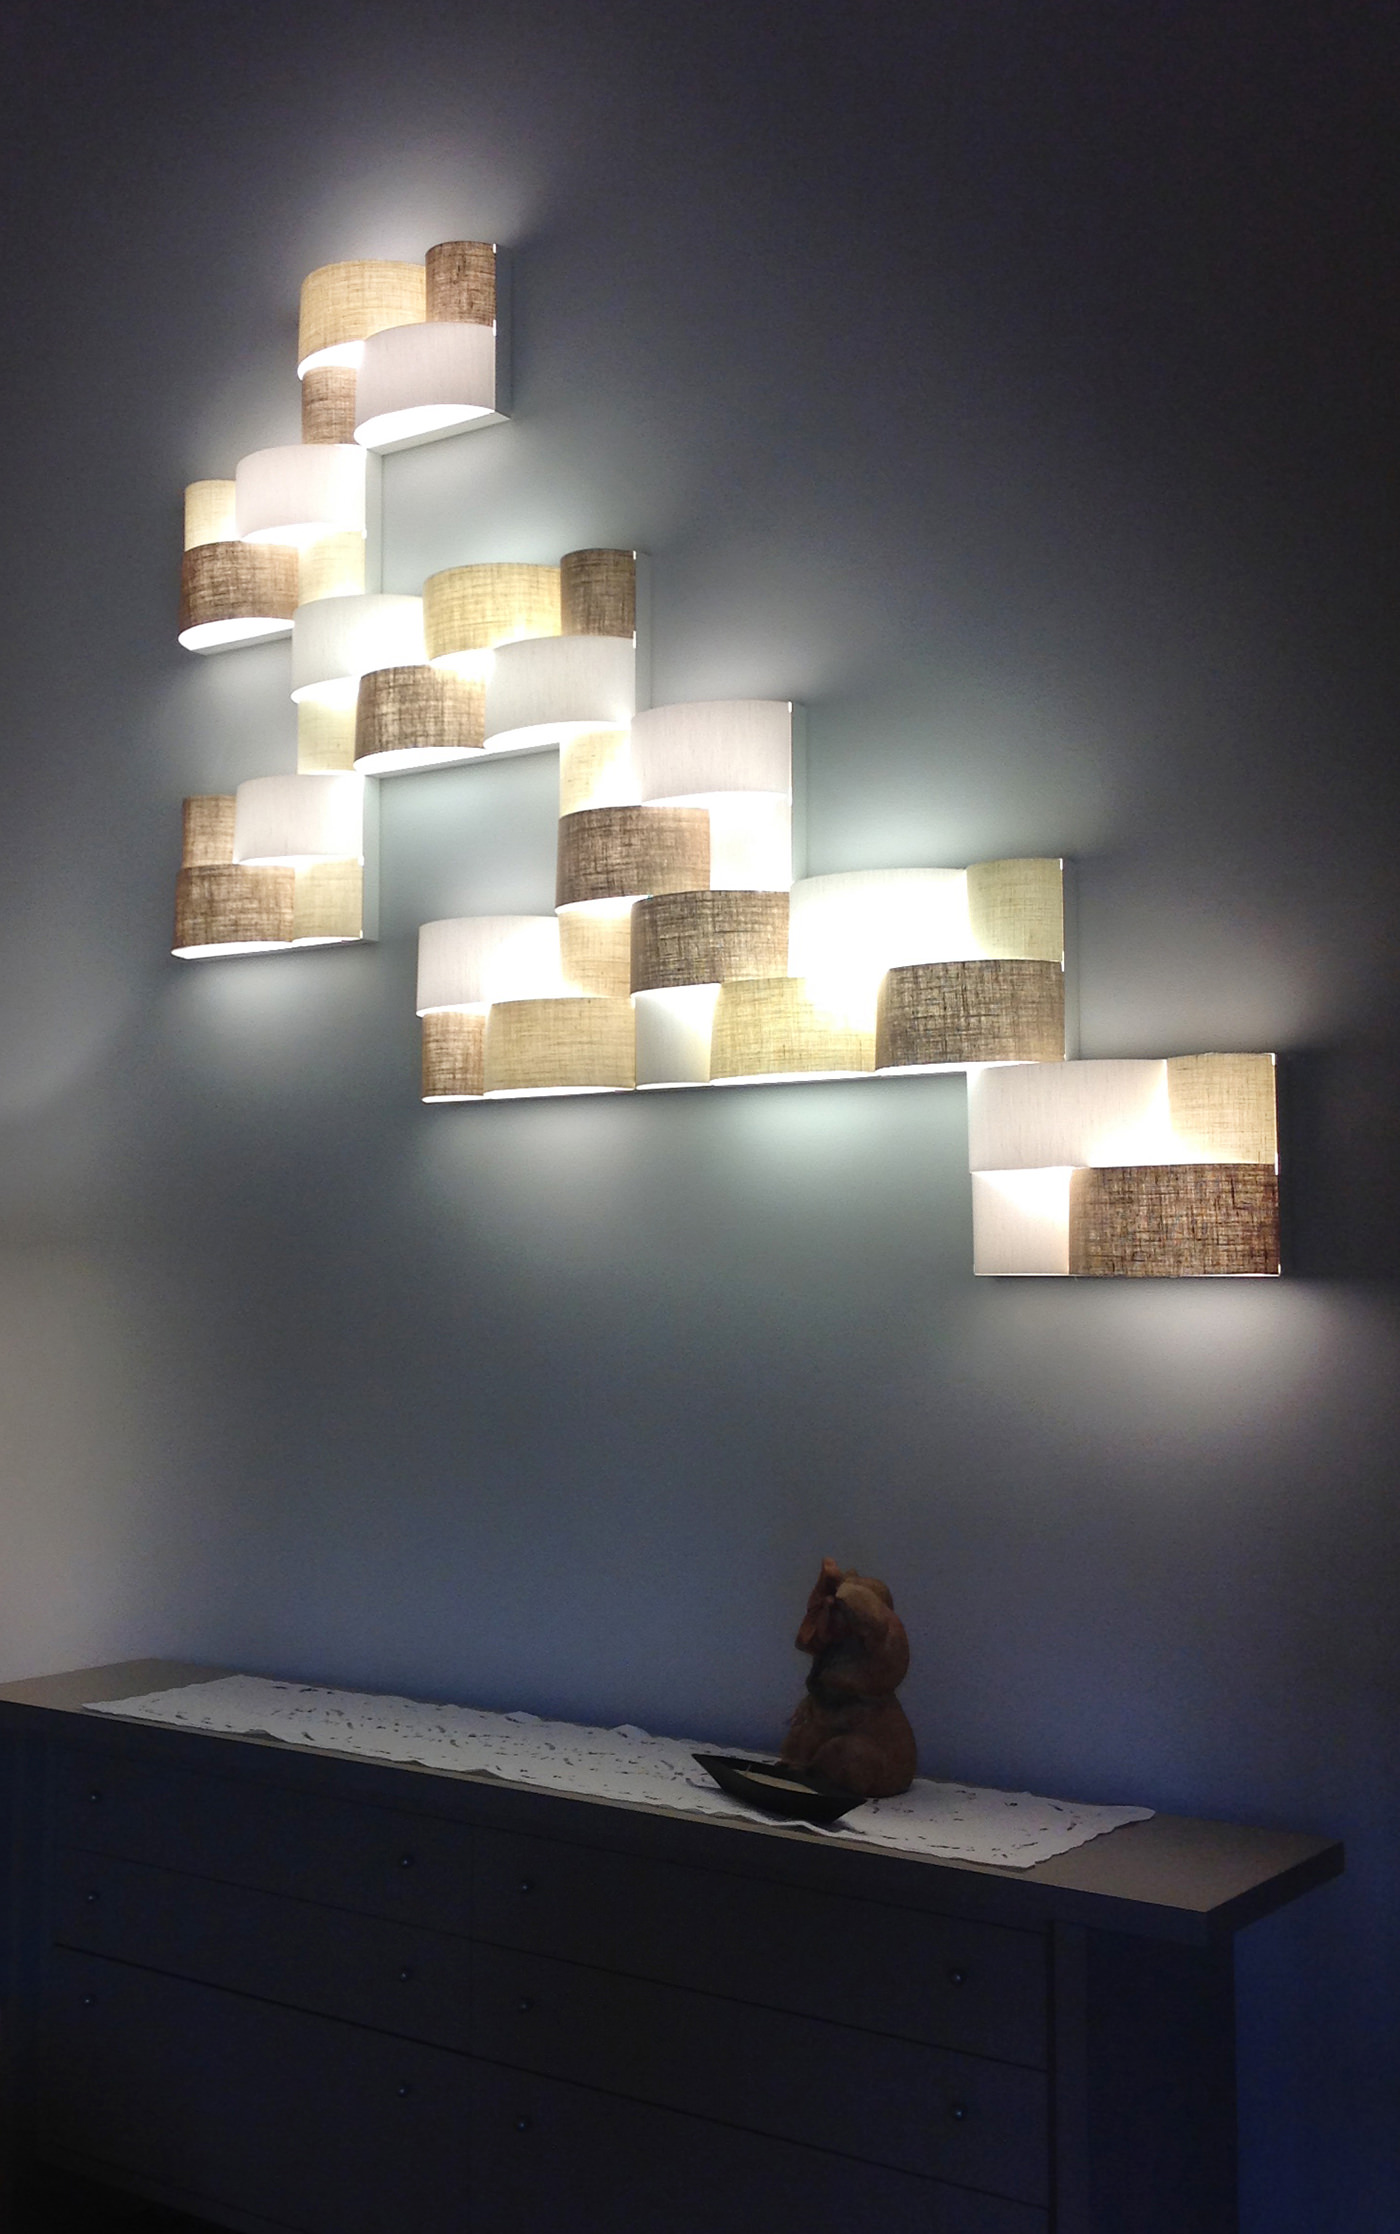 Itama Light4 Brick Residenza Privata Rovigo It 01